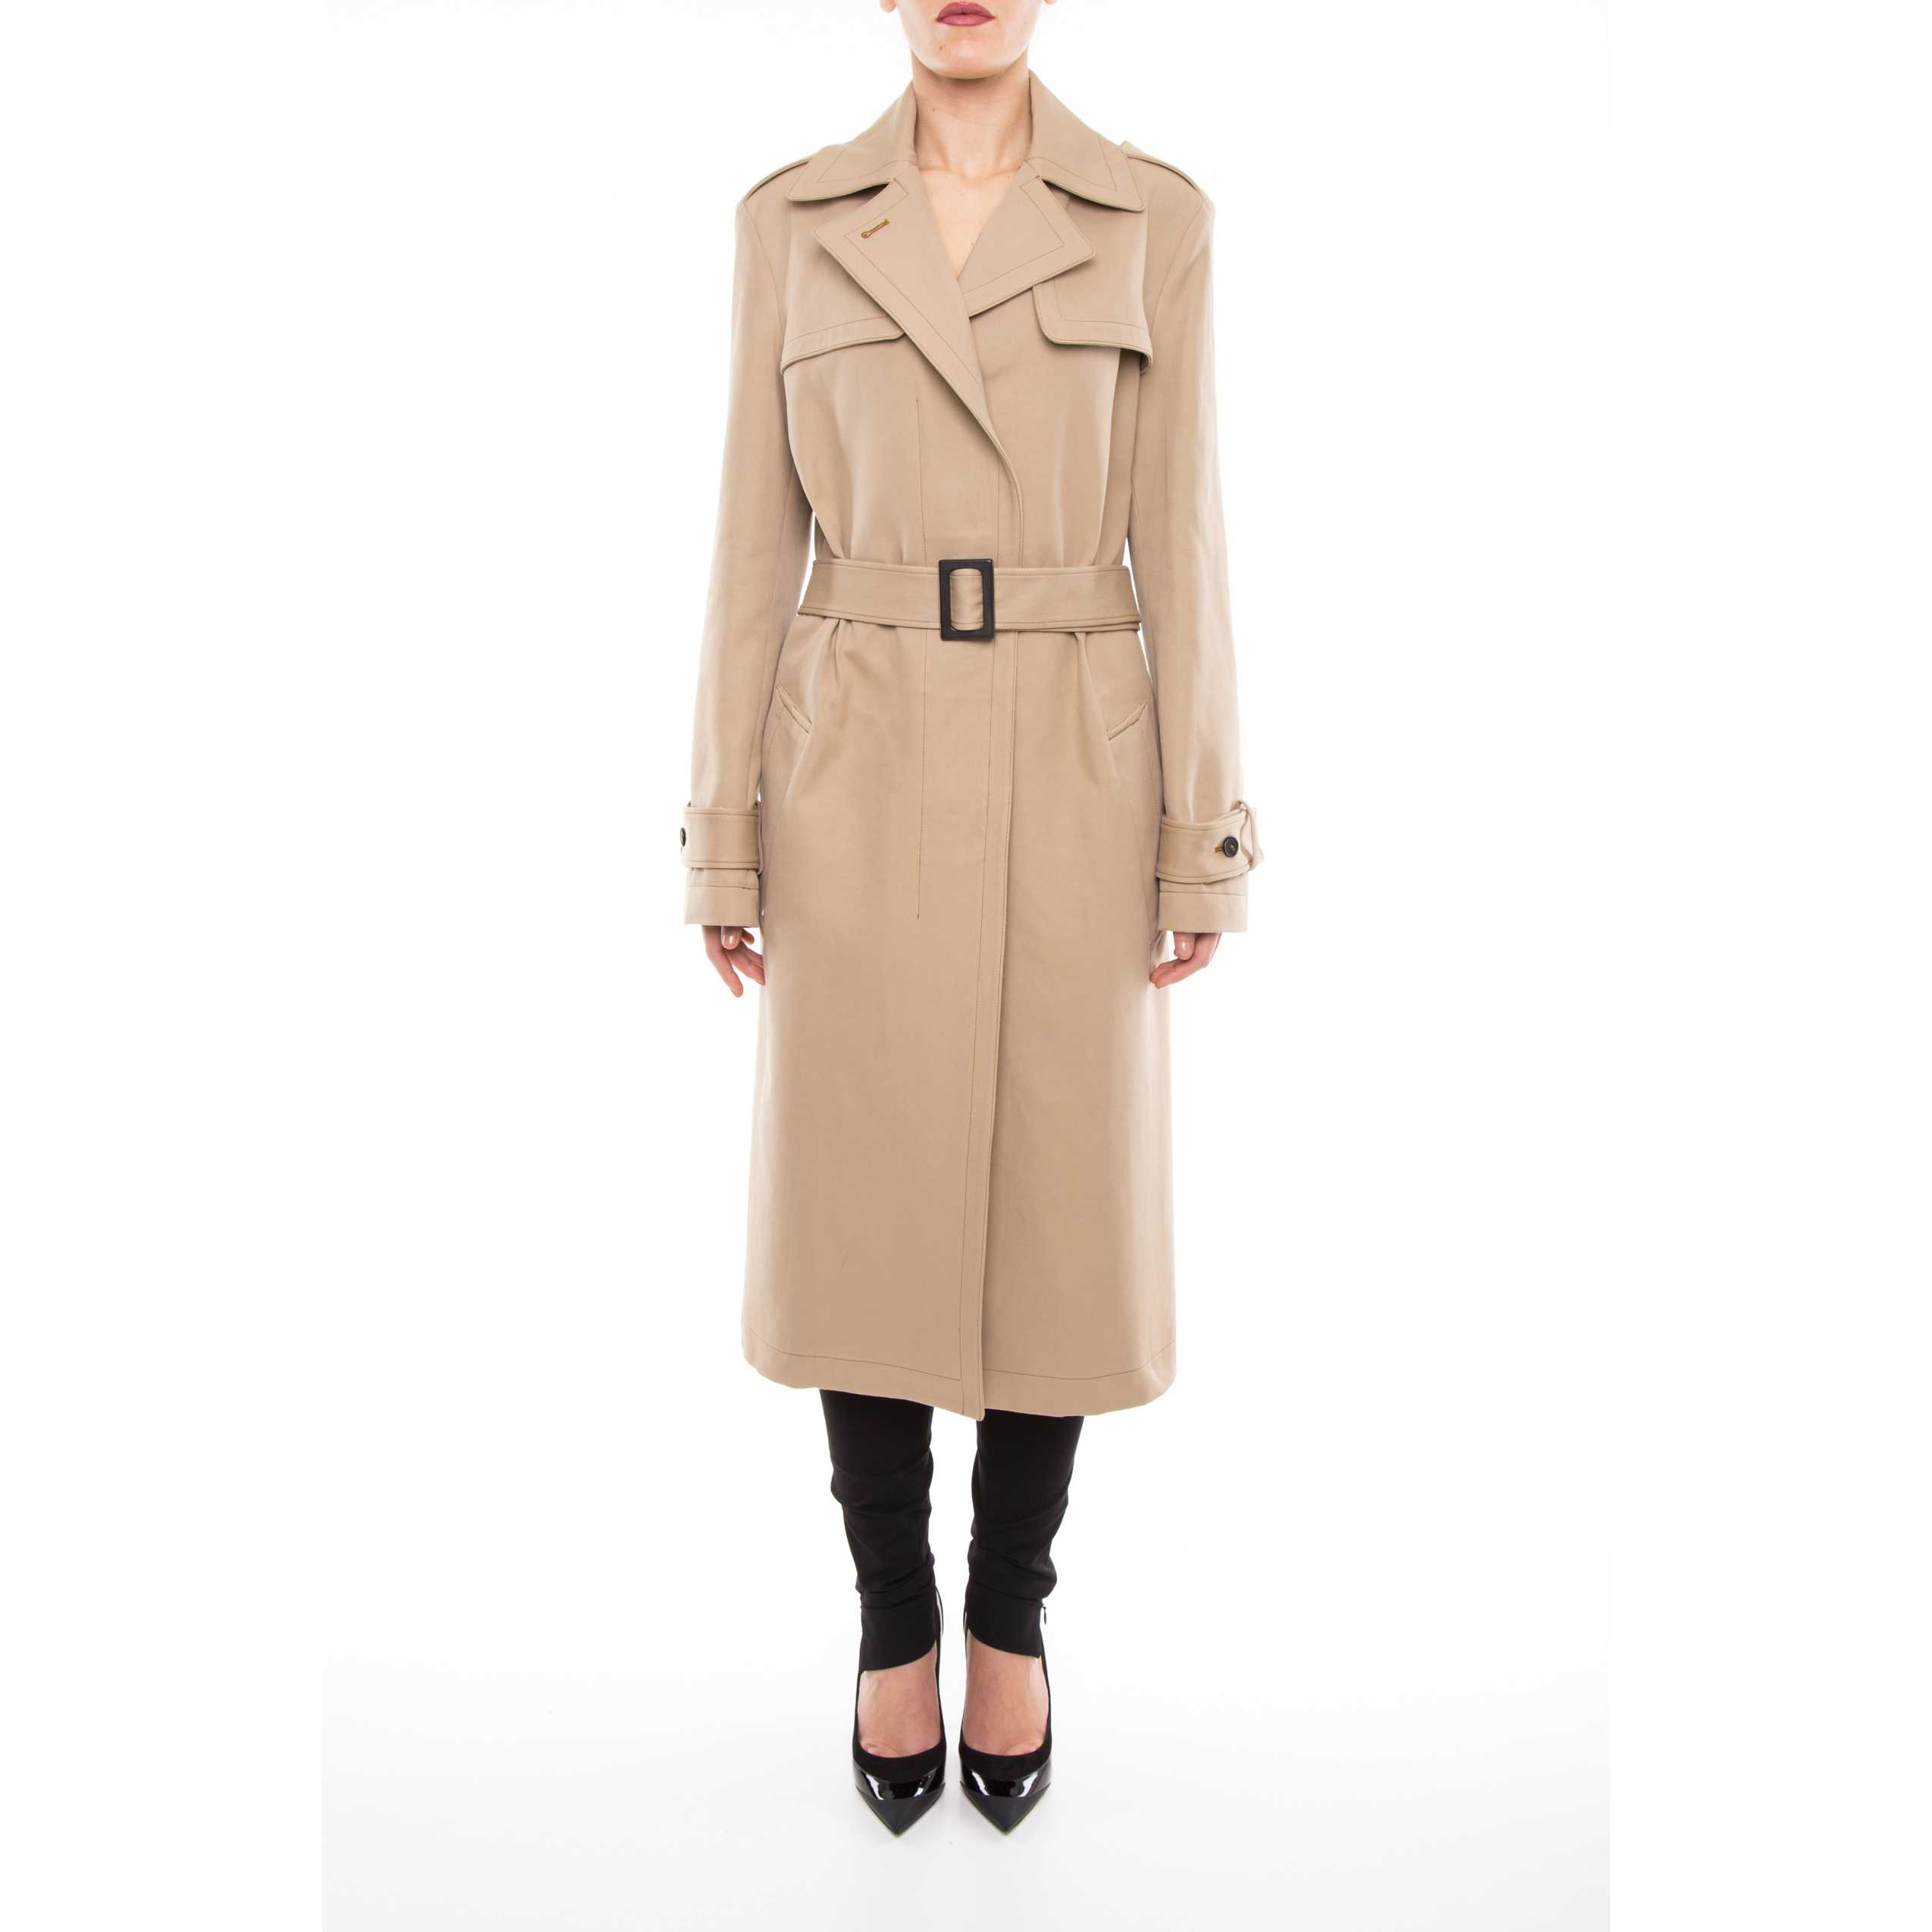 Jil Sander Acri Sport Trench Coat JSPH470125 WH250303 MEDIUM BEIGE trench dama